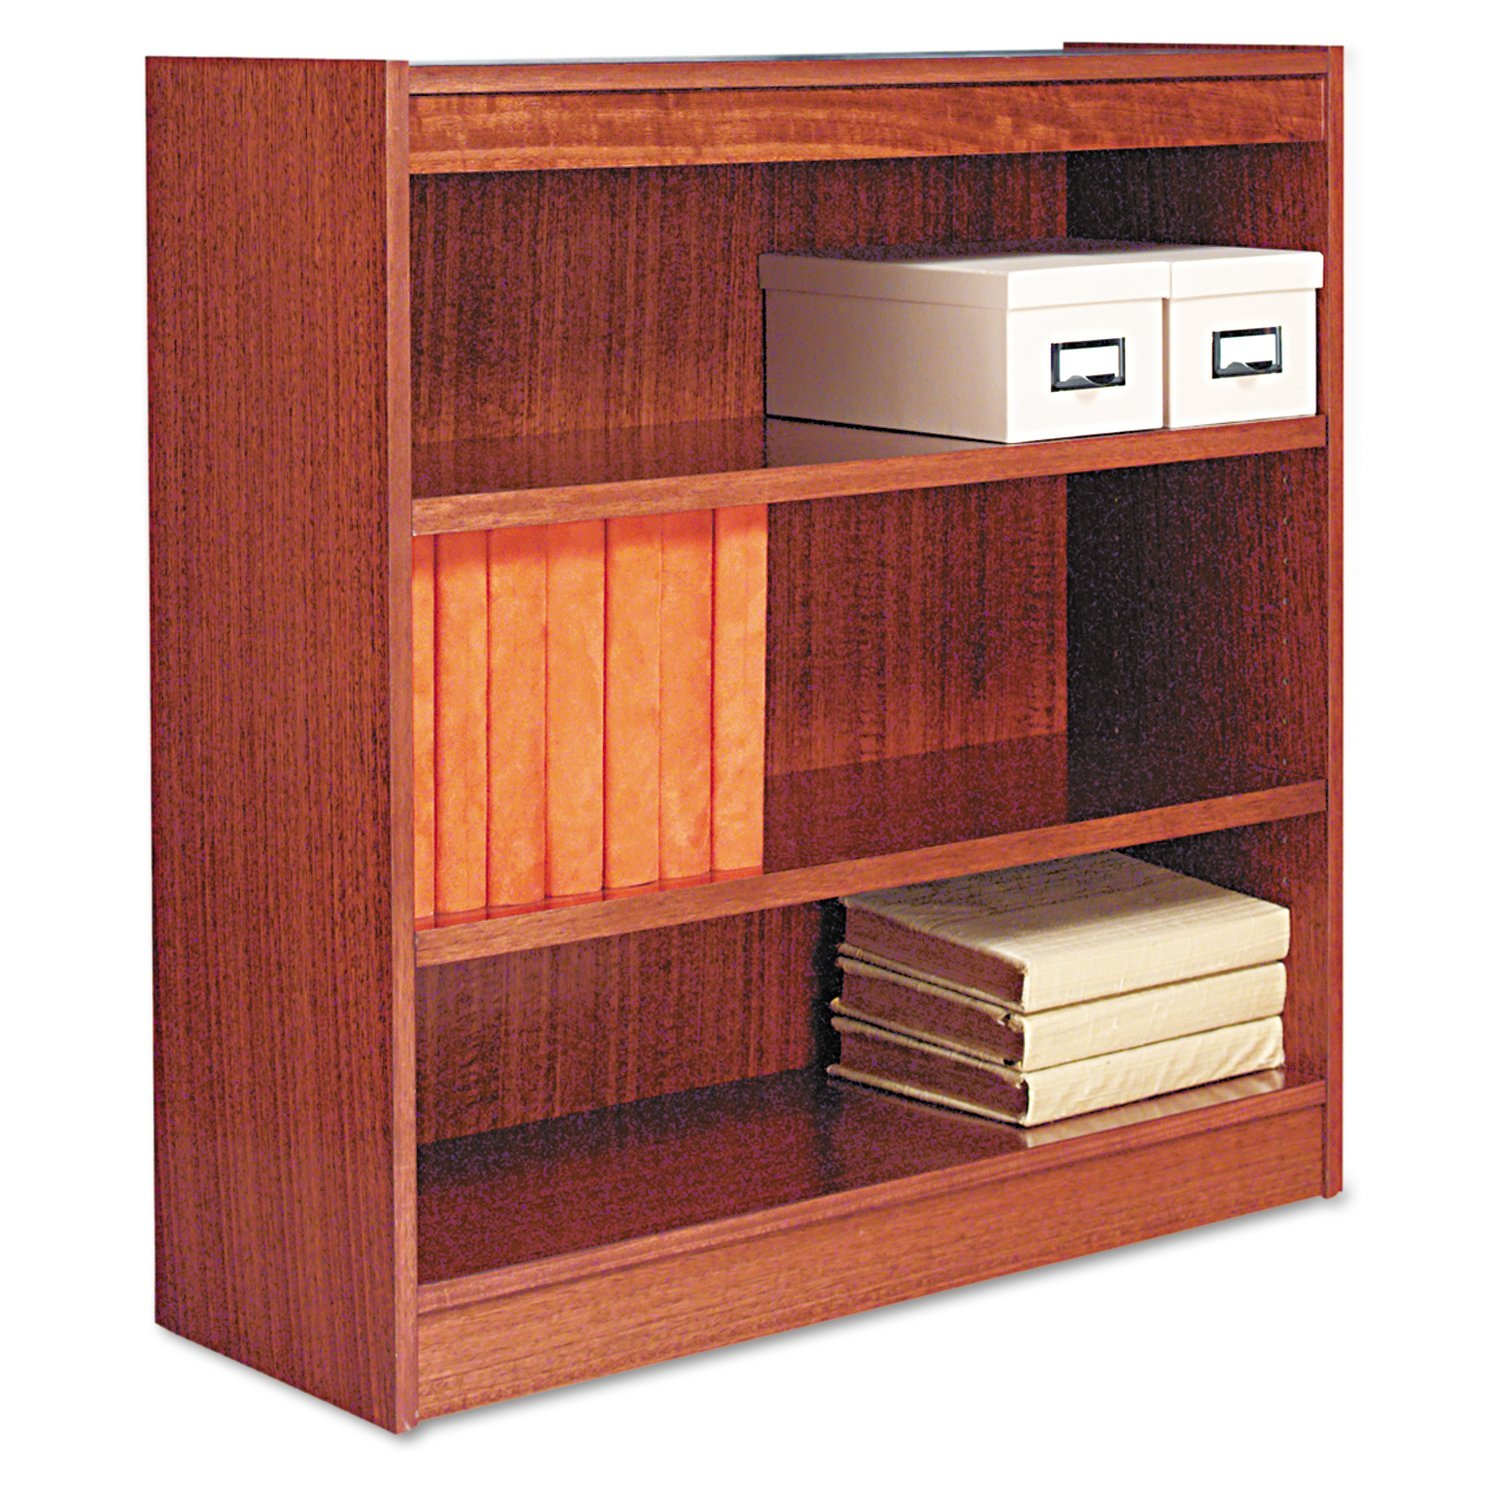 alera bcs my square corner wood veneer bookcase